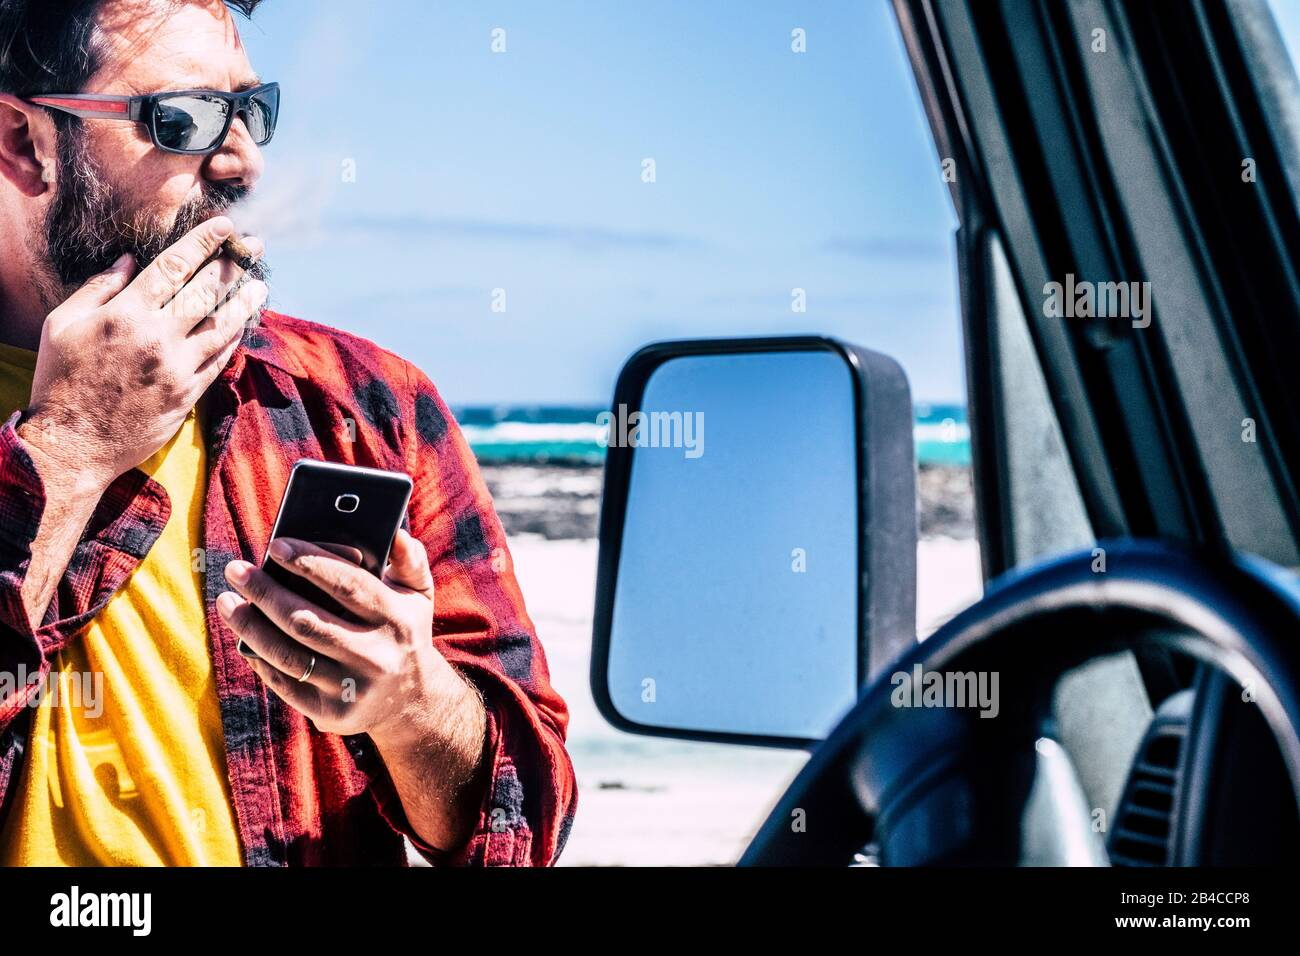 Handsome standing man with cigar use mobile   phone outside his black car - beach and ocean in background for travel and adventure lifestyle concept -  people in outdoor leisure activity Stock Photo